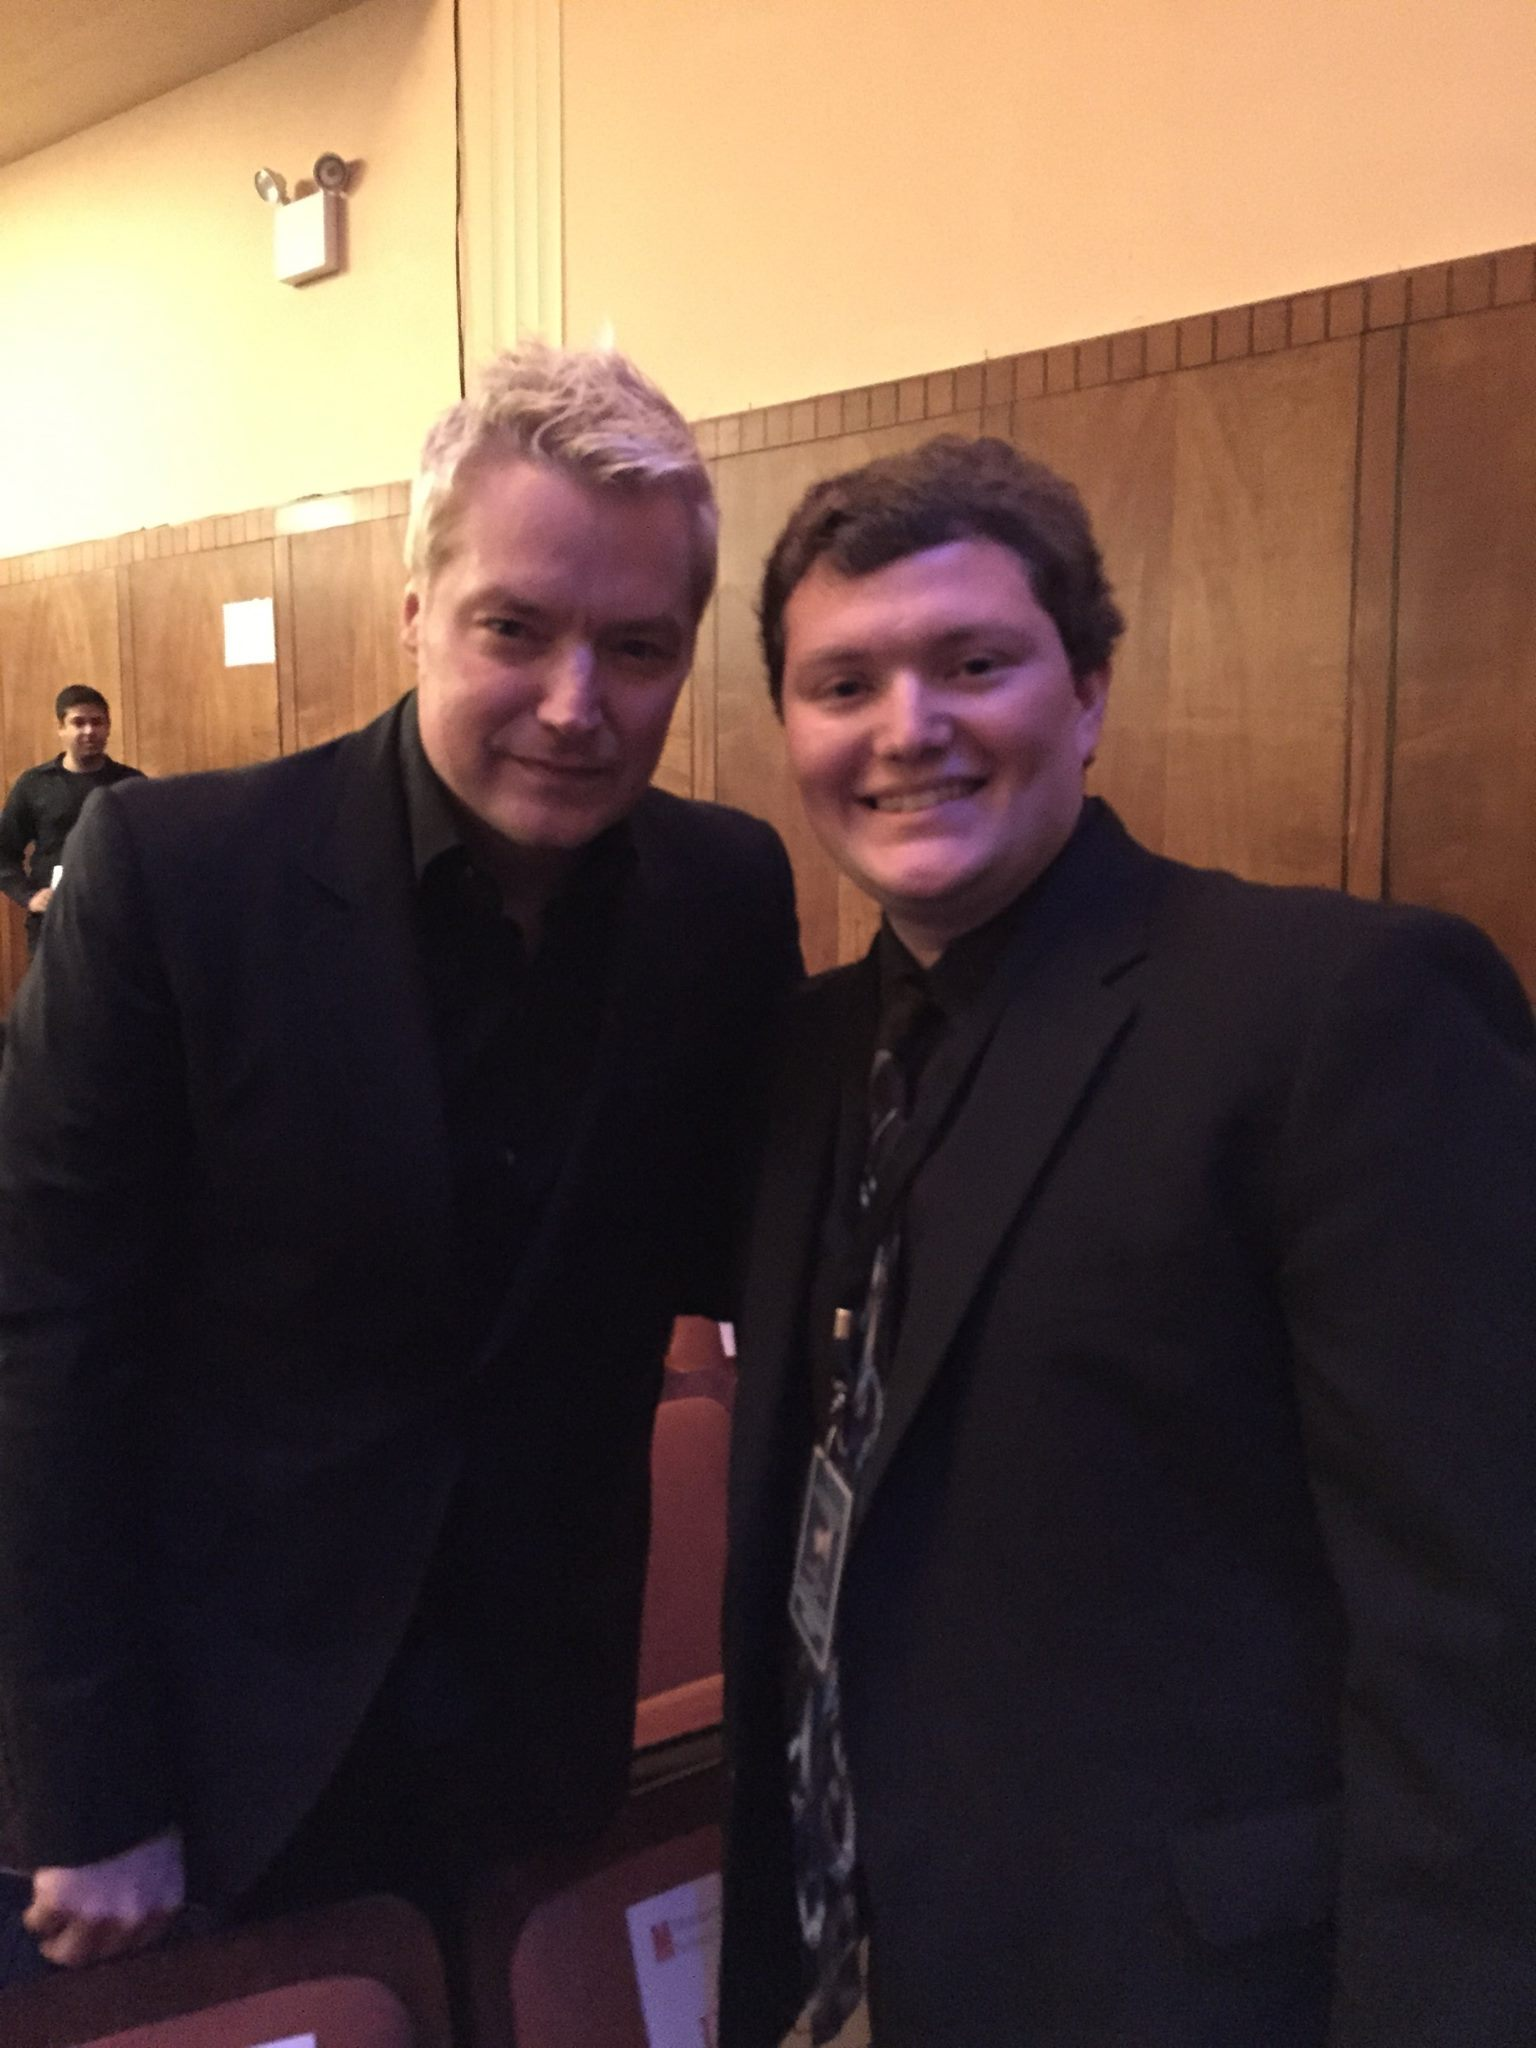 Chris Botti (American trumpeter and composer, and Grammy Award Winner) with Brandon